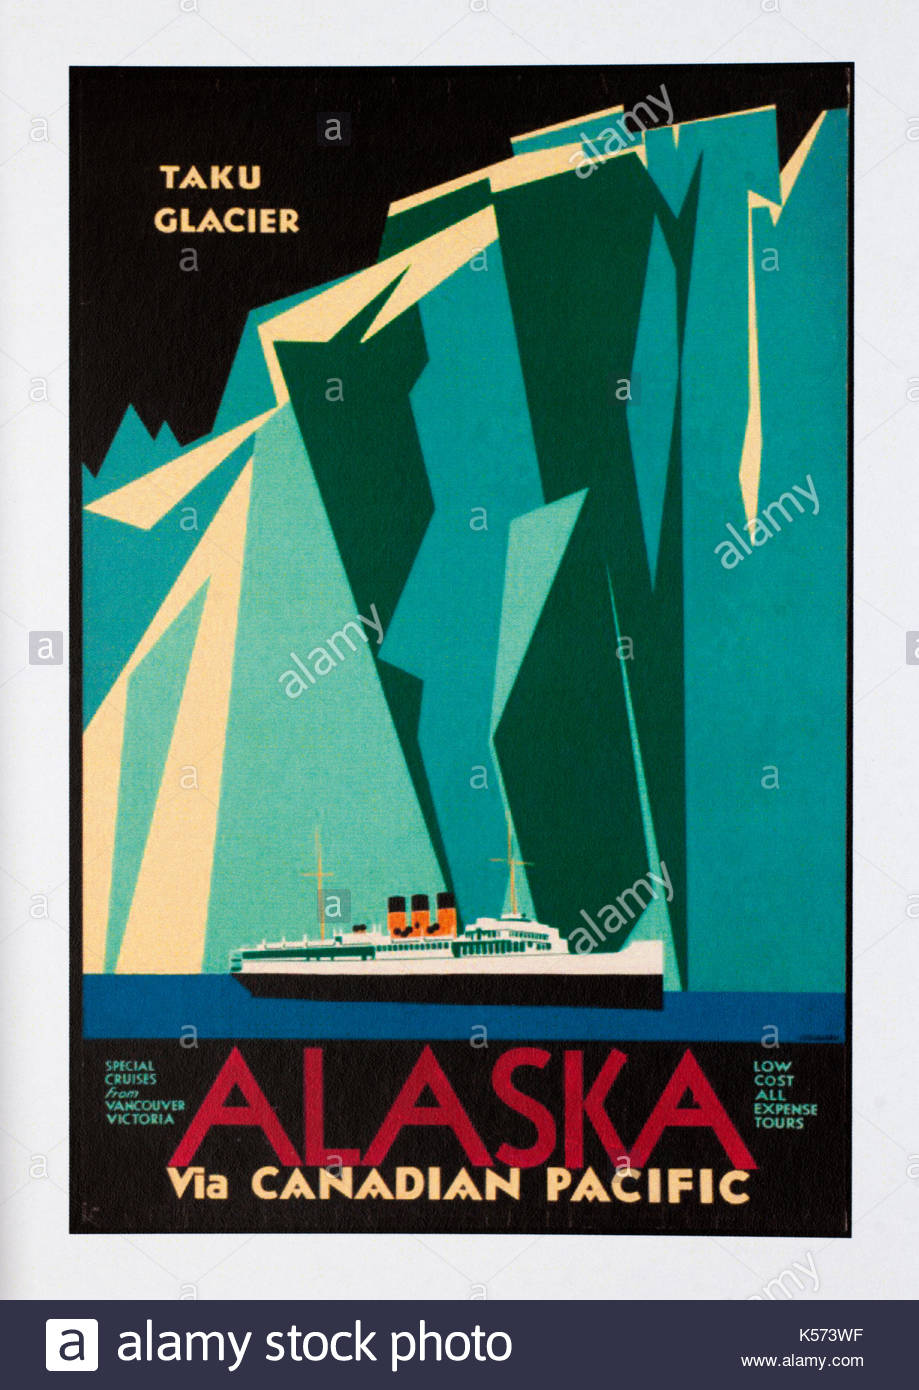 Image result for vintage alaska travel poster